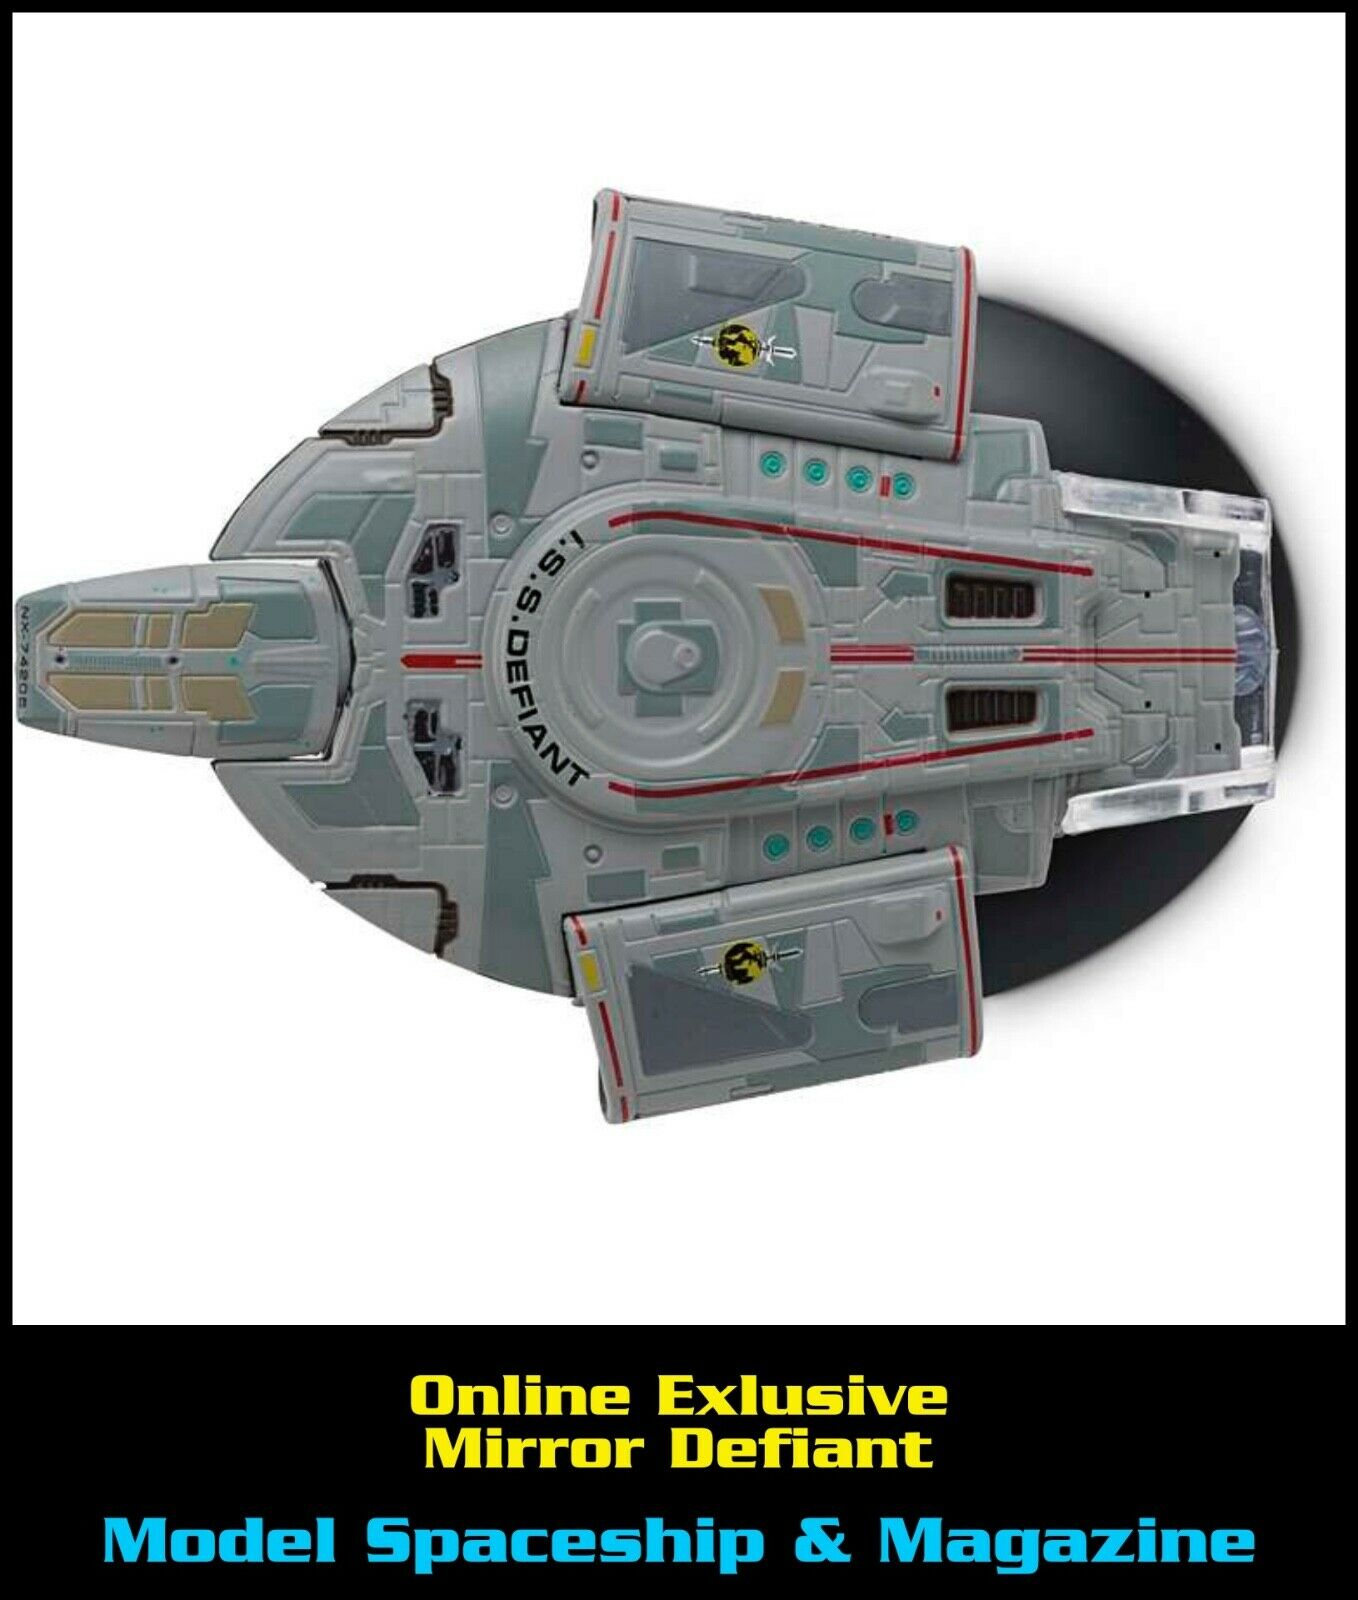 Issue M3 ISS Defiant (Mirror Universe)